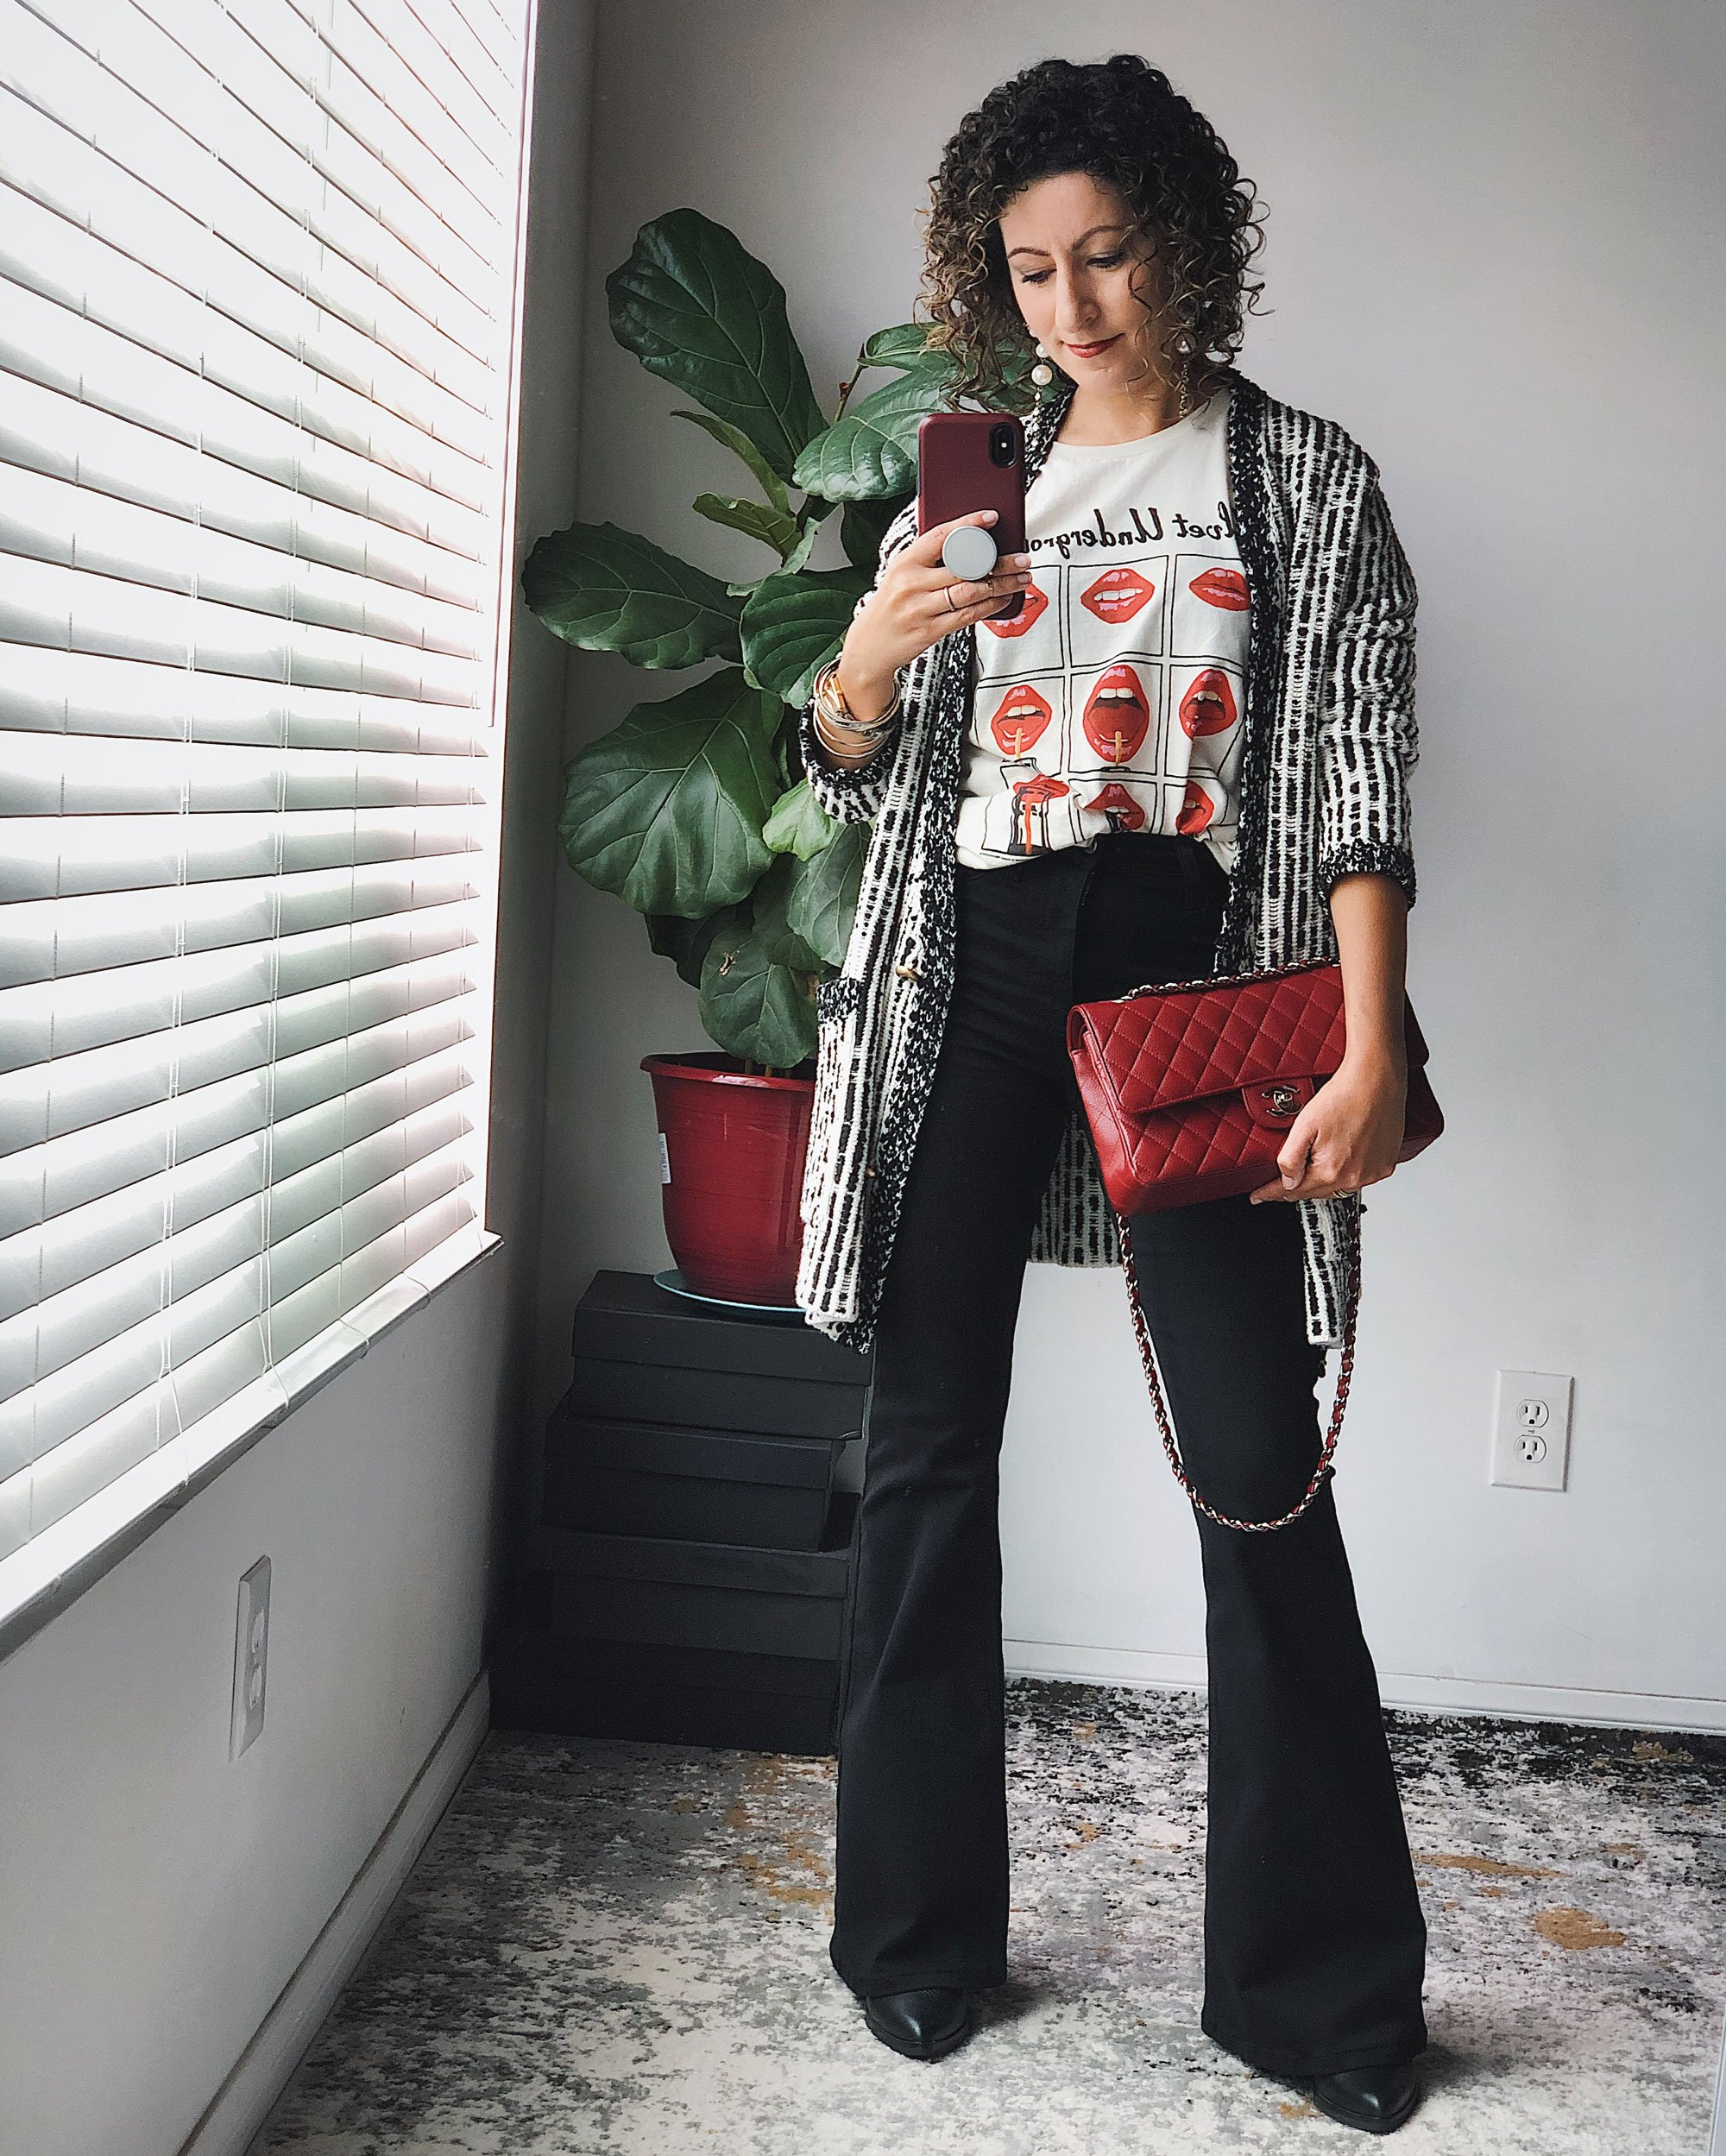 Styling Black Flare Jeans: Day 2